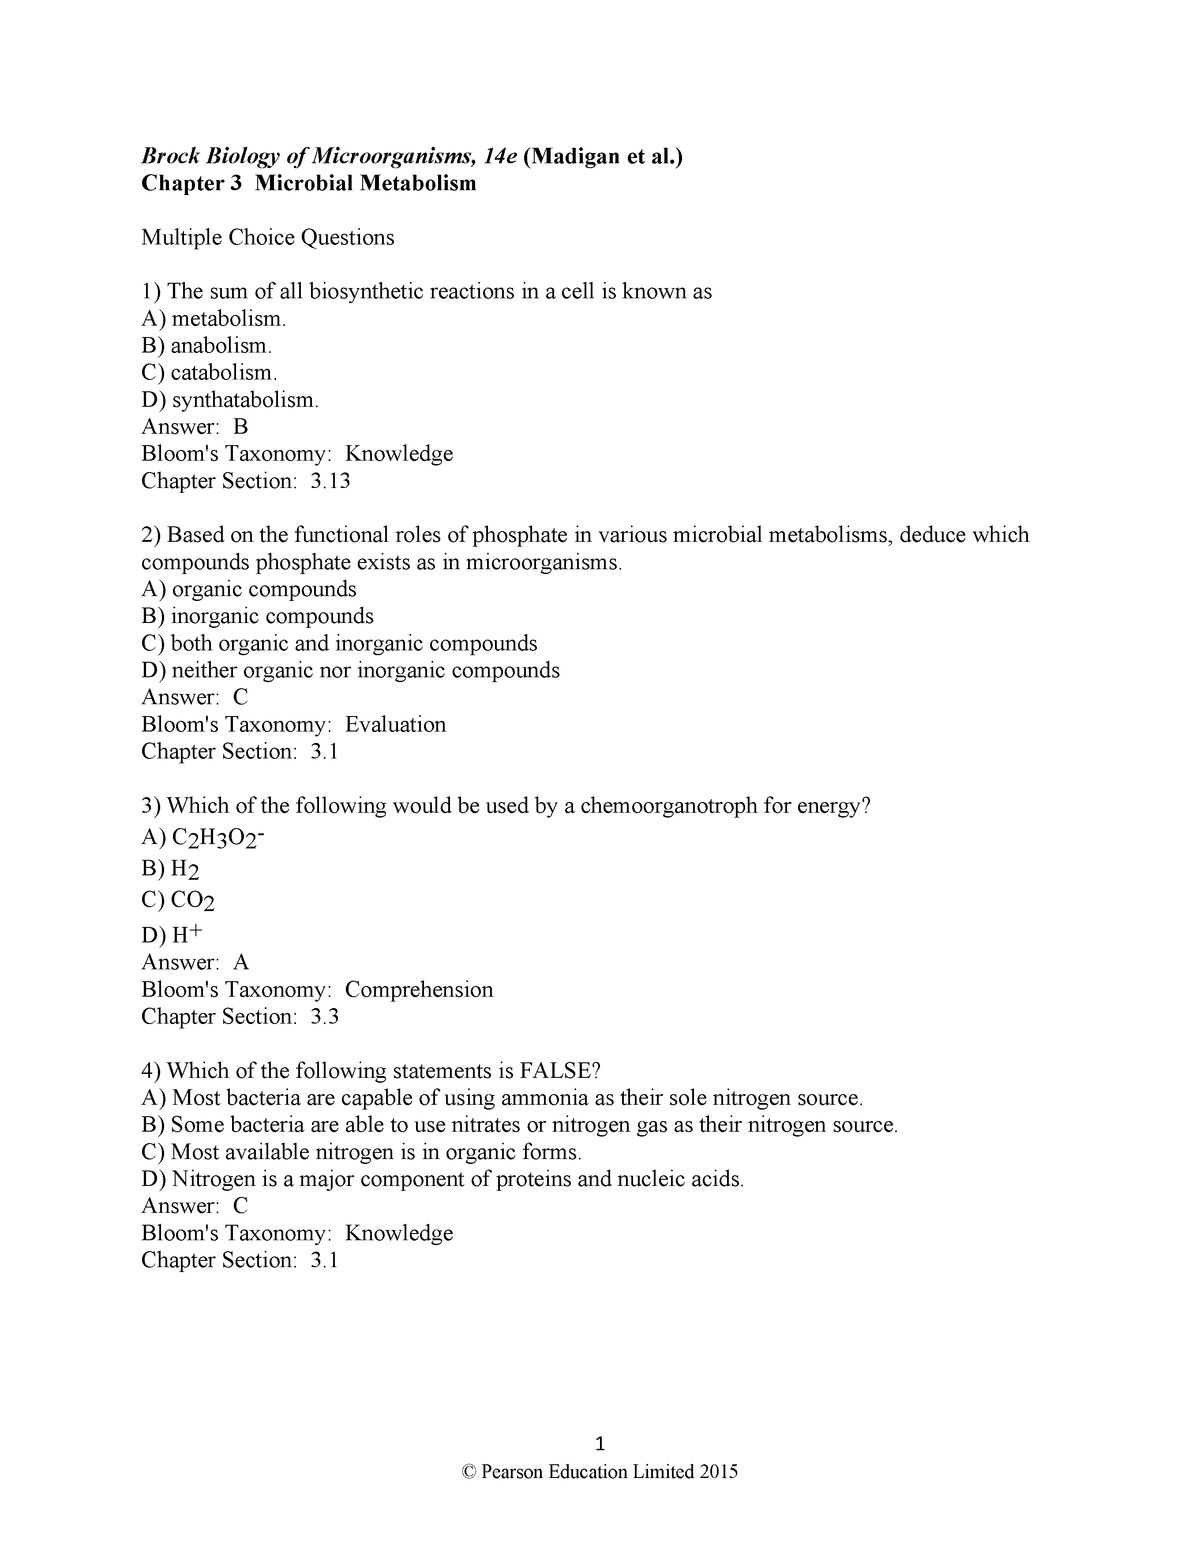 Madigan-14e-ch03 - Solution manual Brock Biology of Microorganisms - StuDocu